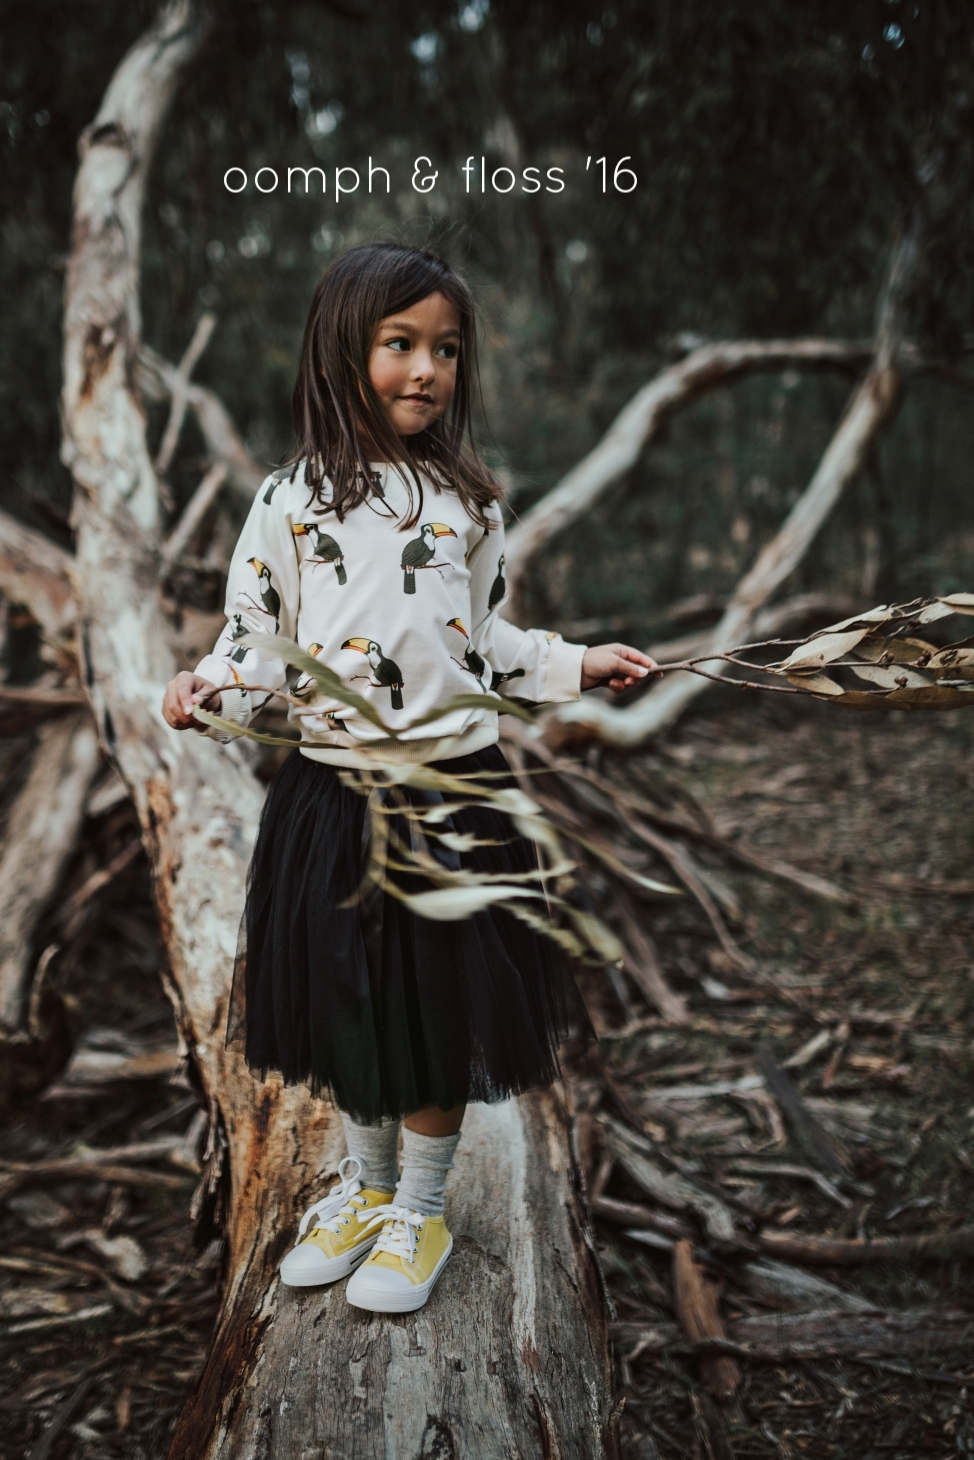 girl-in-nature-kids-commercial-photography-siida-hobart.jpg